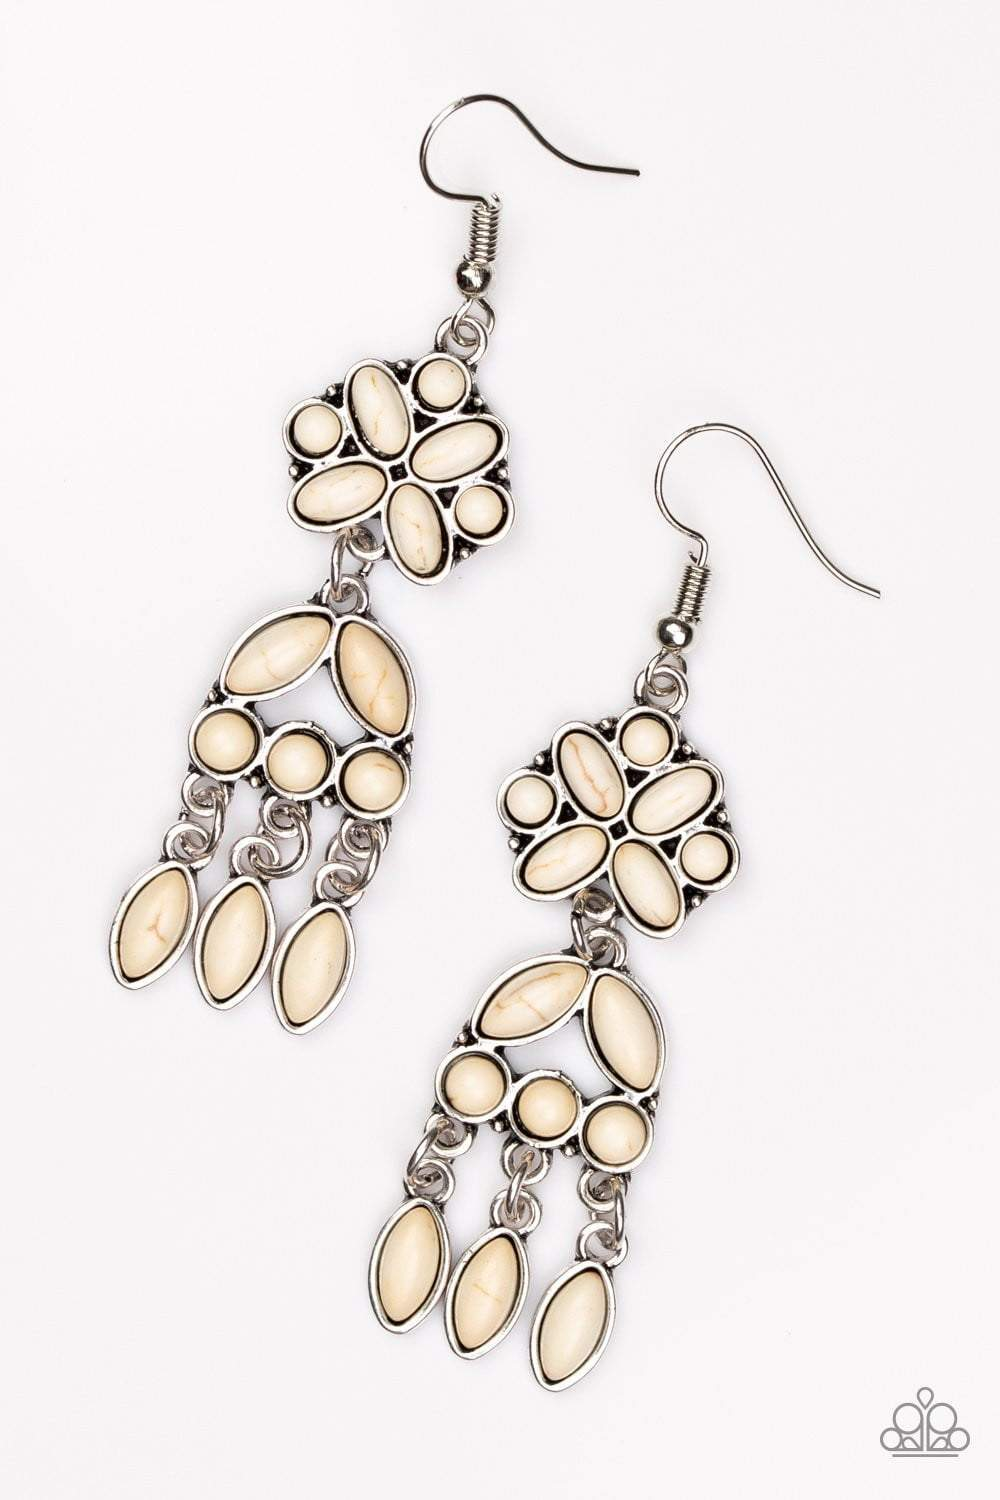 Paparazzi Which Way West - Round Oval Marquise White Stone Stacked Silver Lure Earrings - Bling It On Online